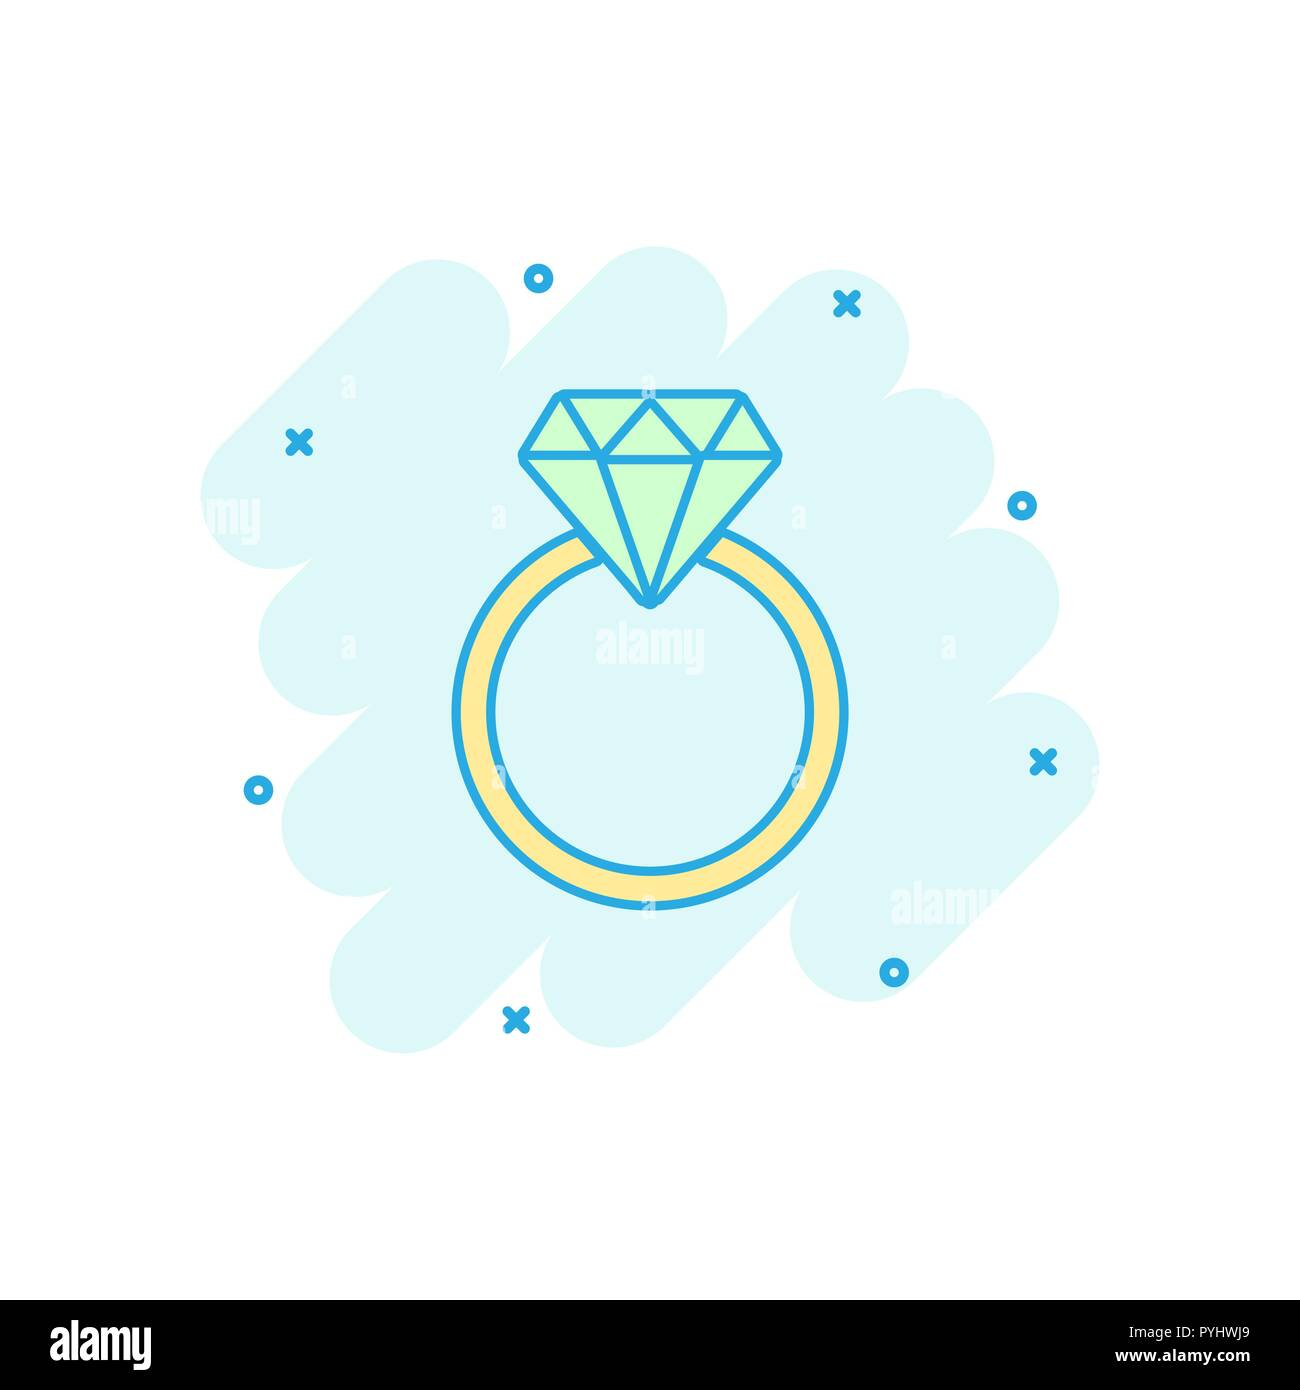 Vector Cartoon Engagement Ring With Diamond Icon In Comic Style Wedding Jewelery Ring Illustration Pictogram Romance Relationship Business Splash Ef Stock Vector Image Art Alamy